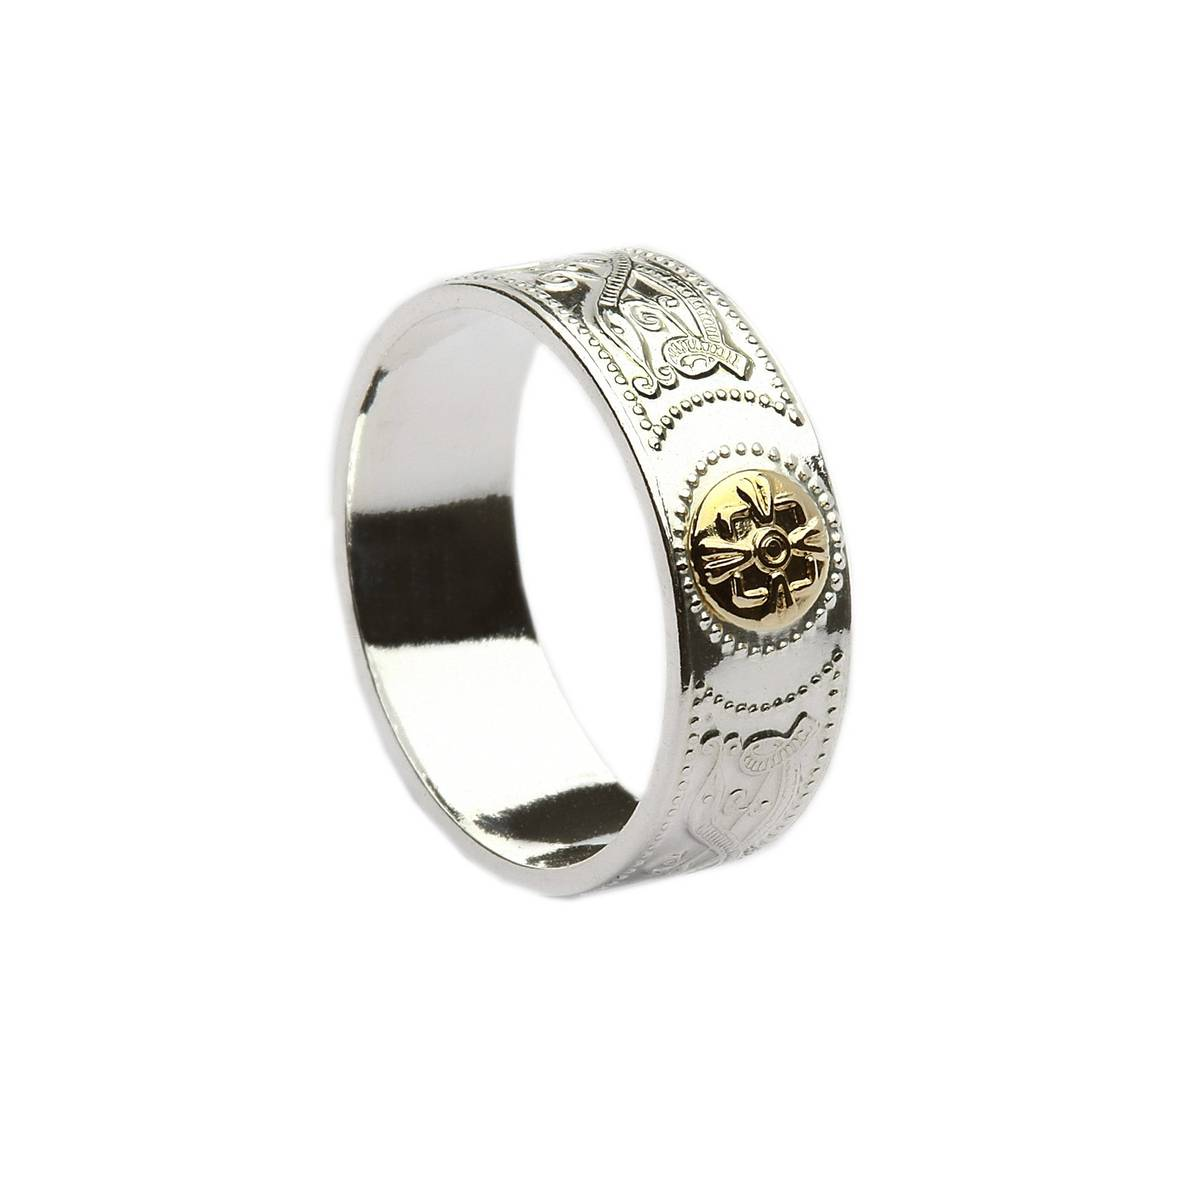 Silver Arda inspired ring with 14 carat yellow gold shield.(0.6cm wide)Great value.